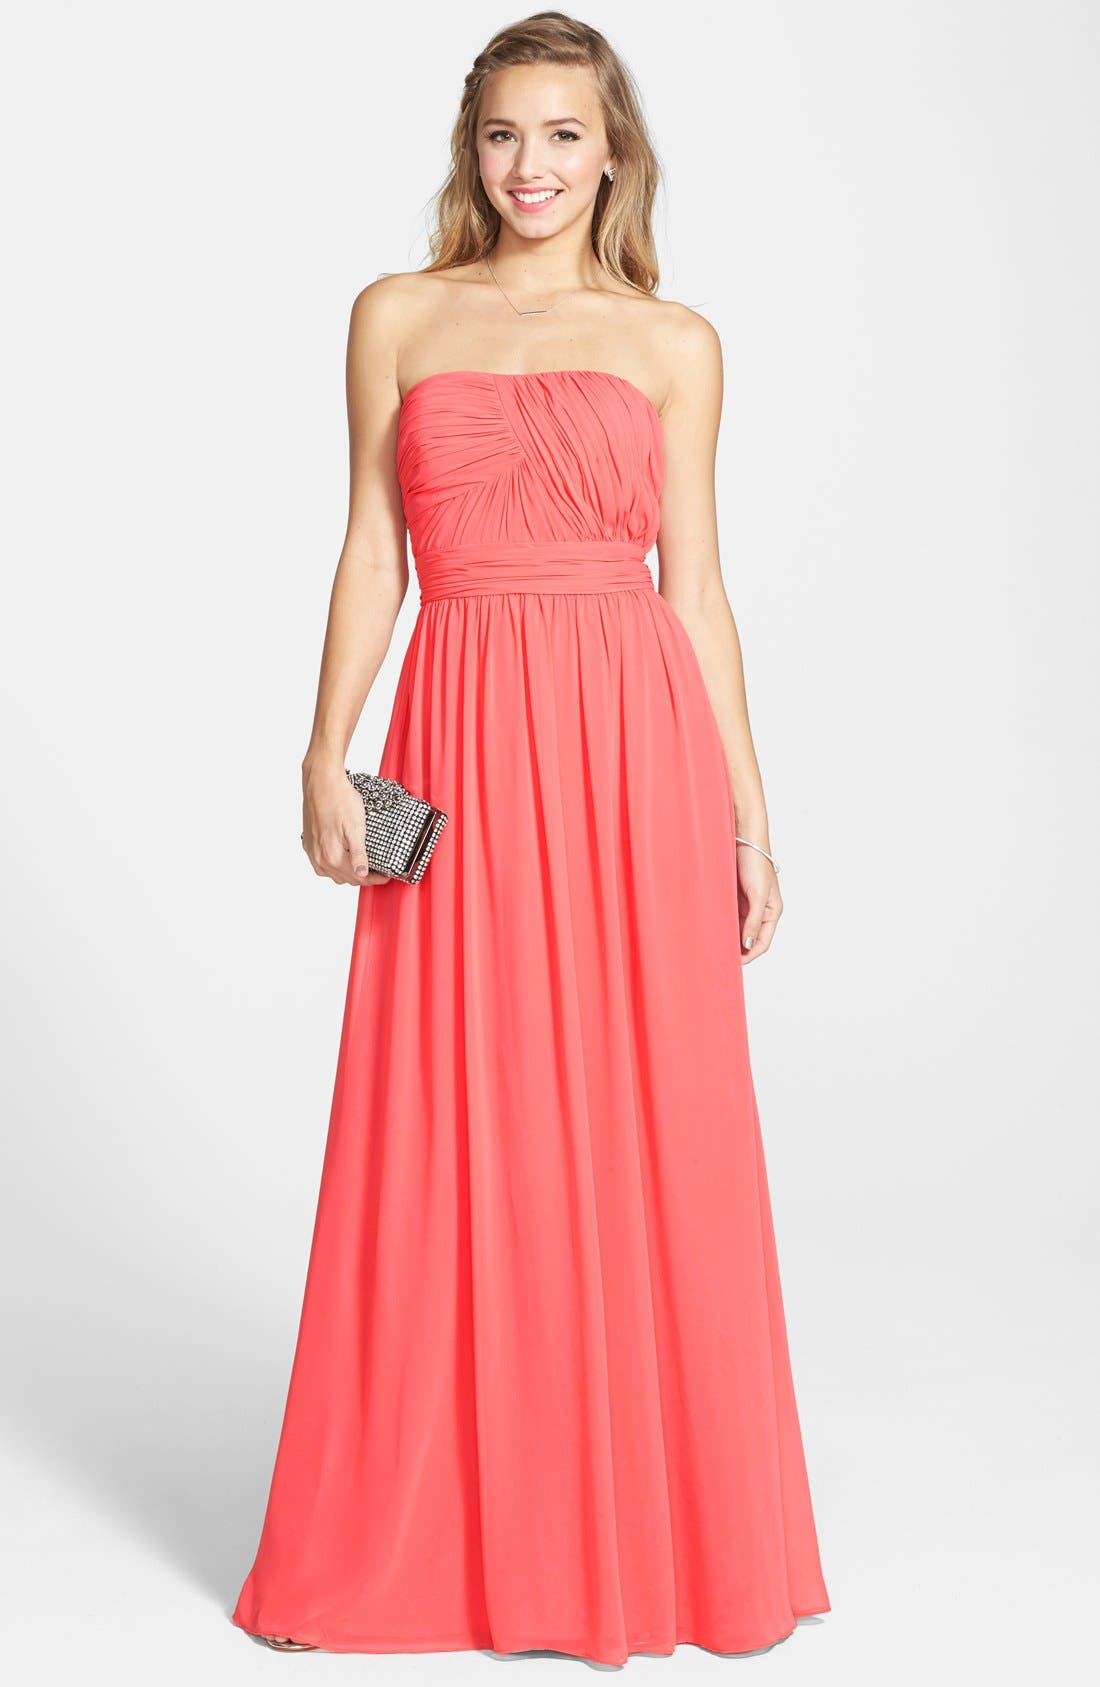 HAILEY BY ADRIANNA PAPELL,                             Shirred Chiffon Strapless Gown,                             Main thumbnail 1, color,                             650